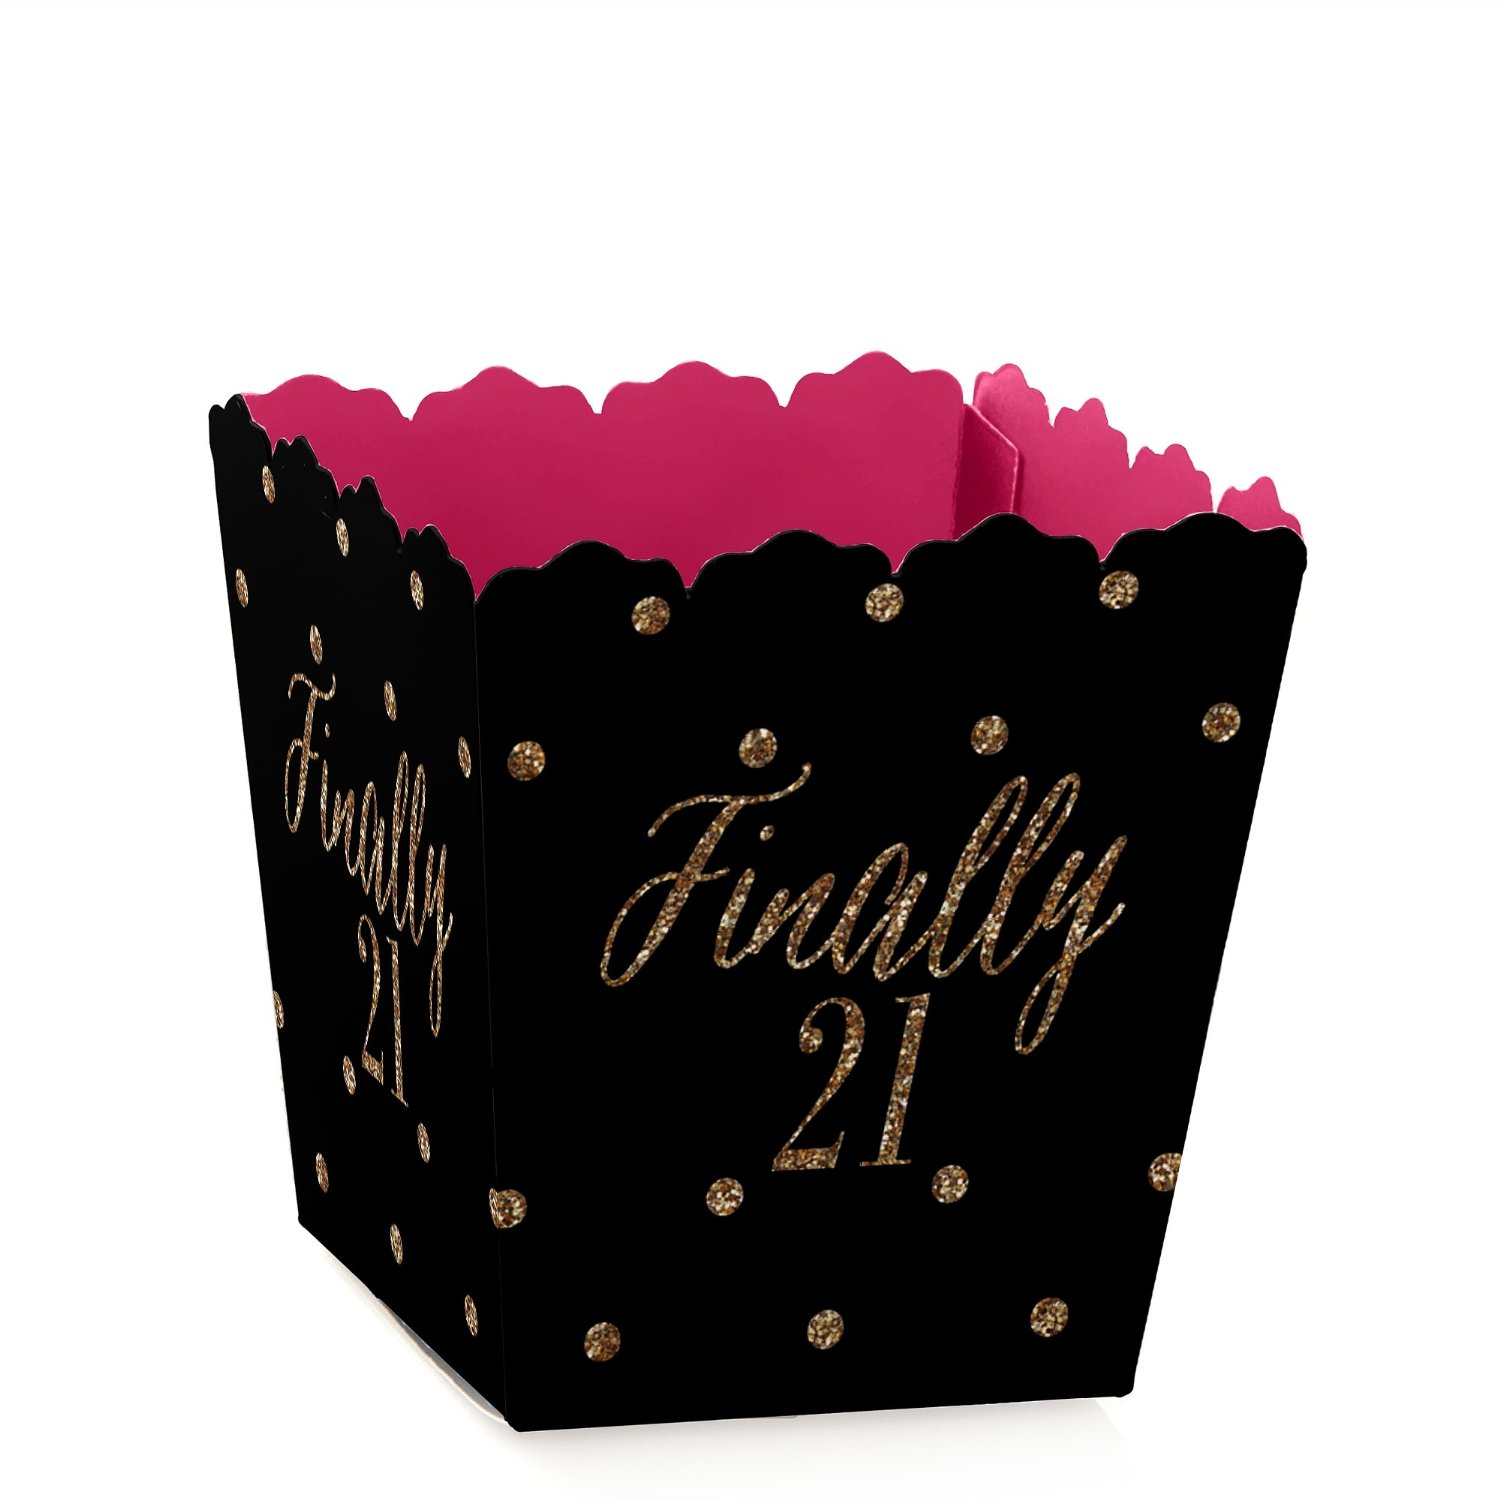 Finally 21 Girl - 21st Birthday - Candy Boxes Party Favors (Set of 12)